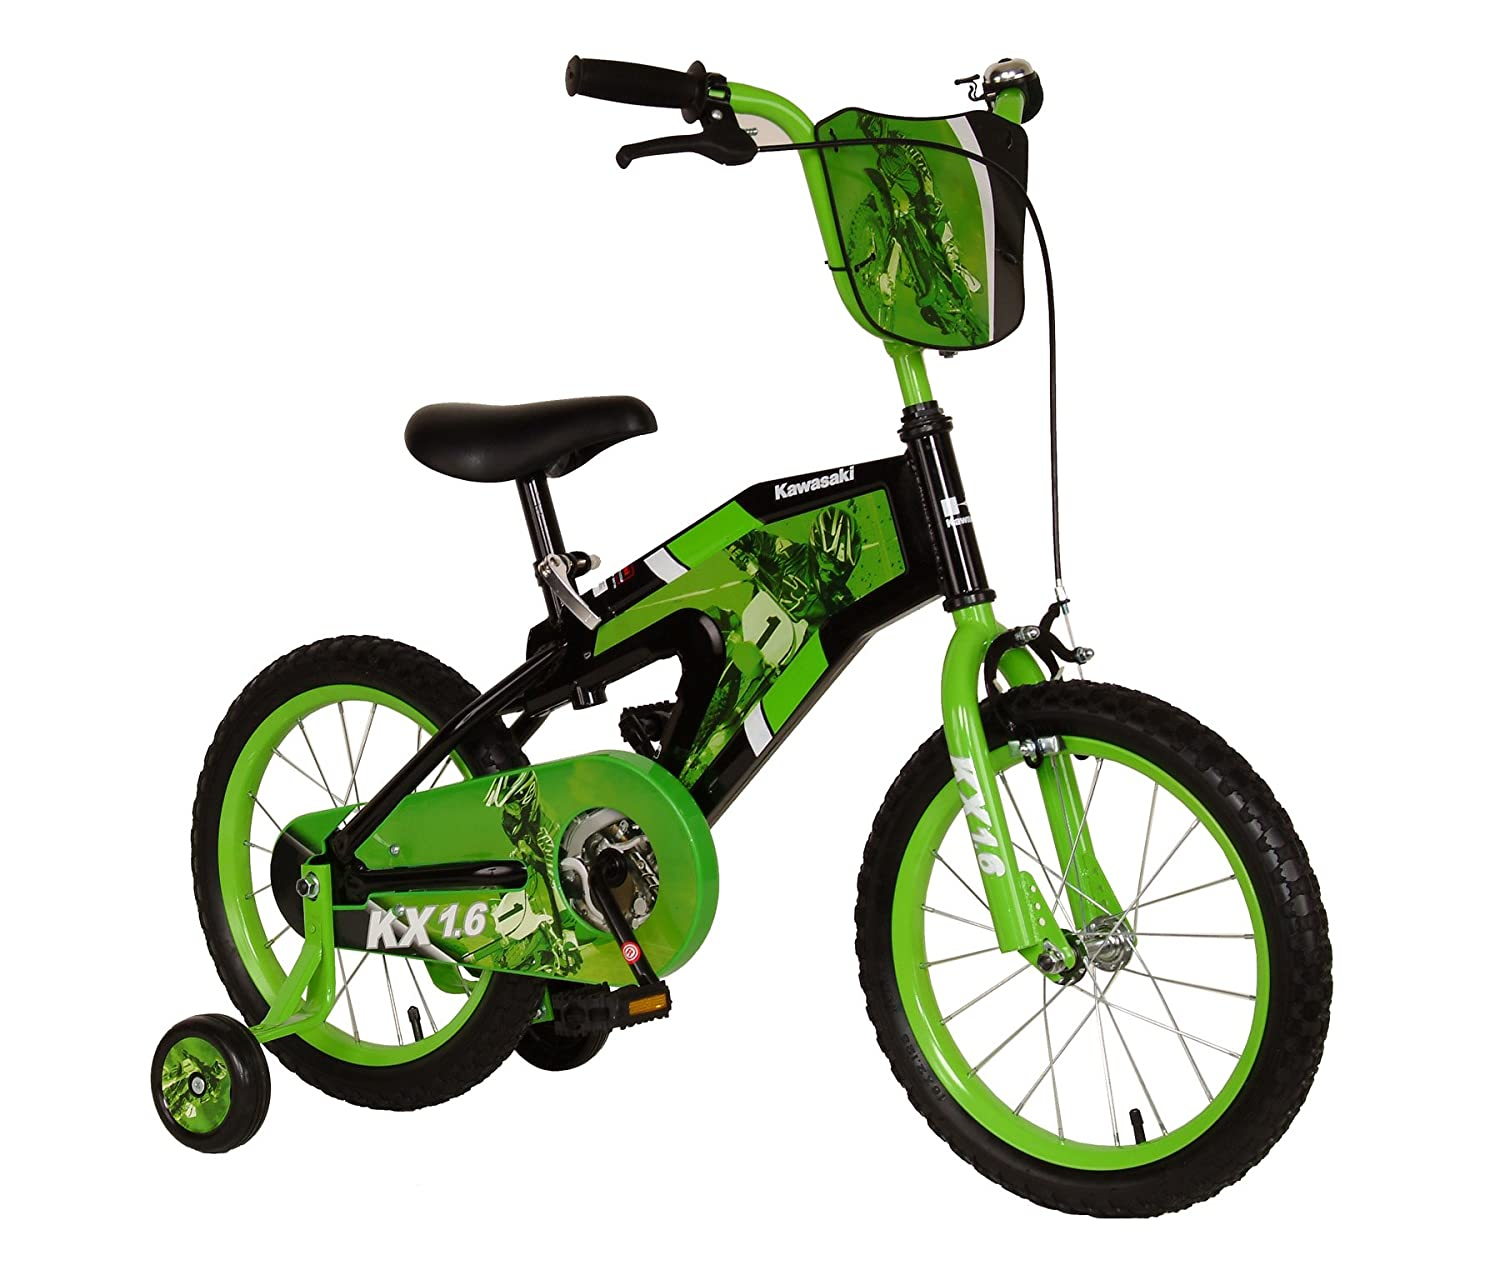 Kawasaki Monocoque Kid S Bike 16 Inch Wheels 11